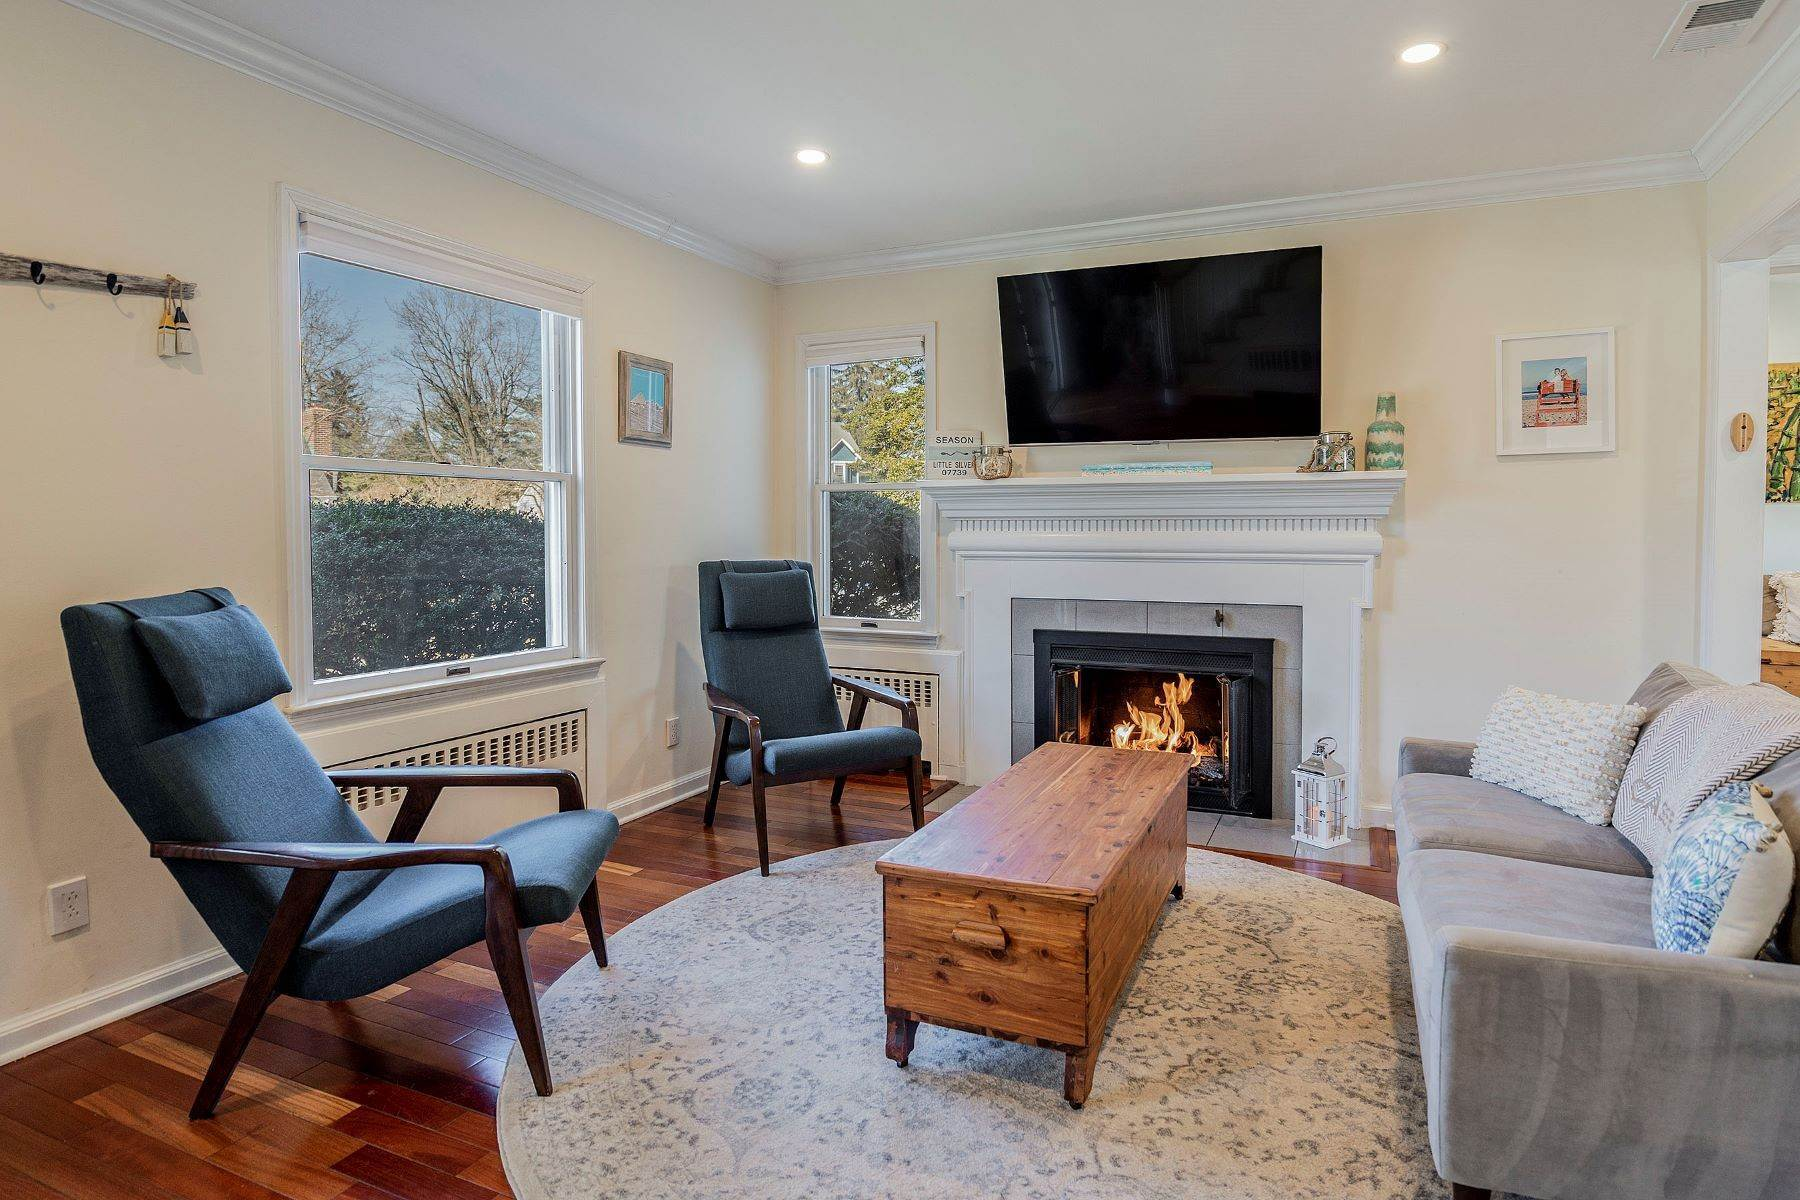 6. Single Family Homes for Sale at Sunnycrest Neighborhood 16 Carlile Terrace Little Silver, New Jersey 07739 United States